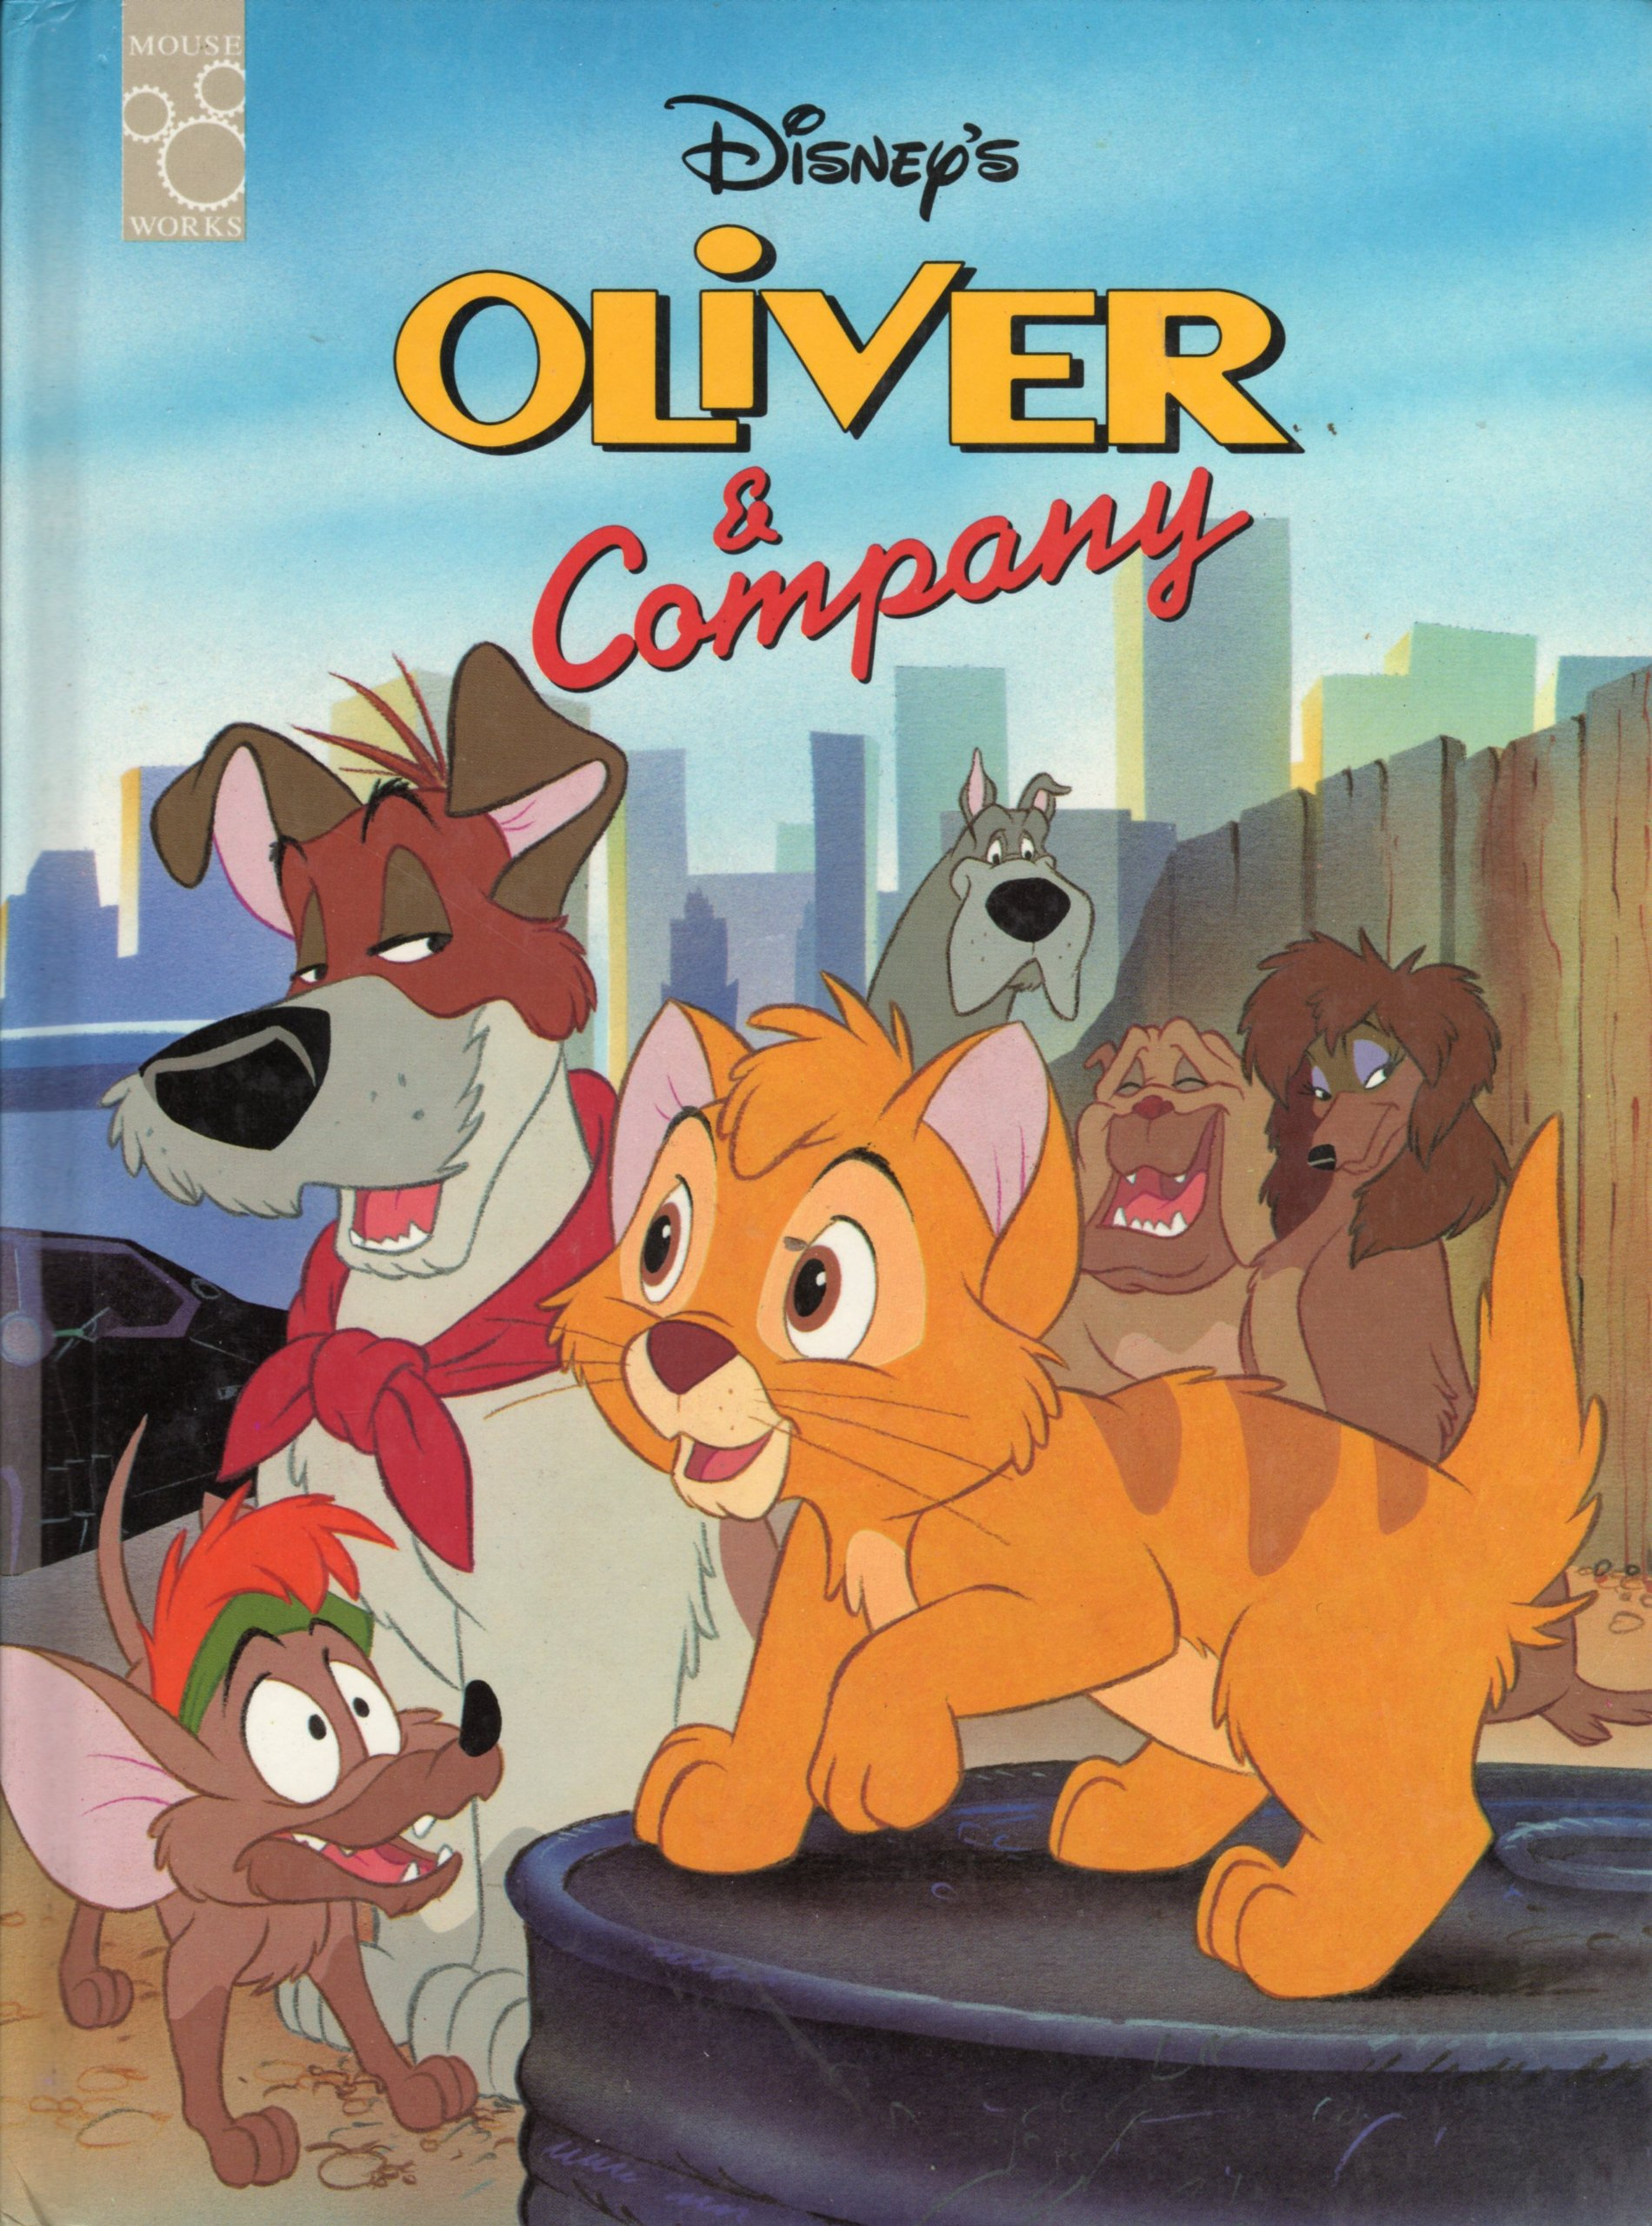 disneys oliver and company mouse works classic storybook .